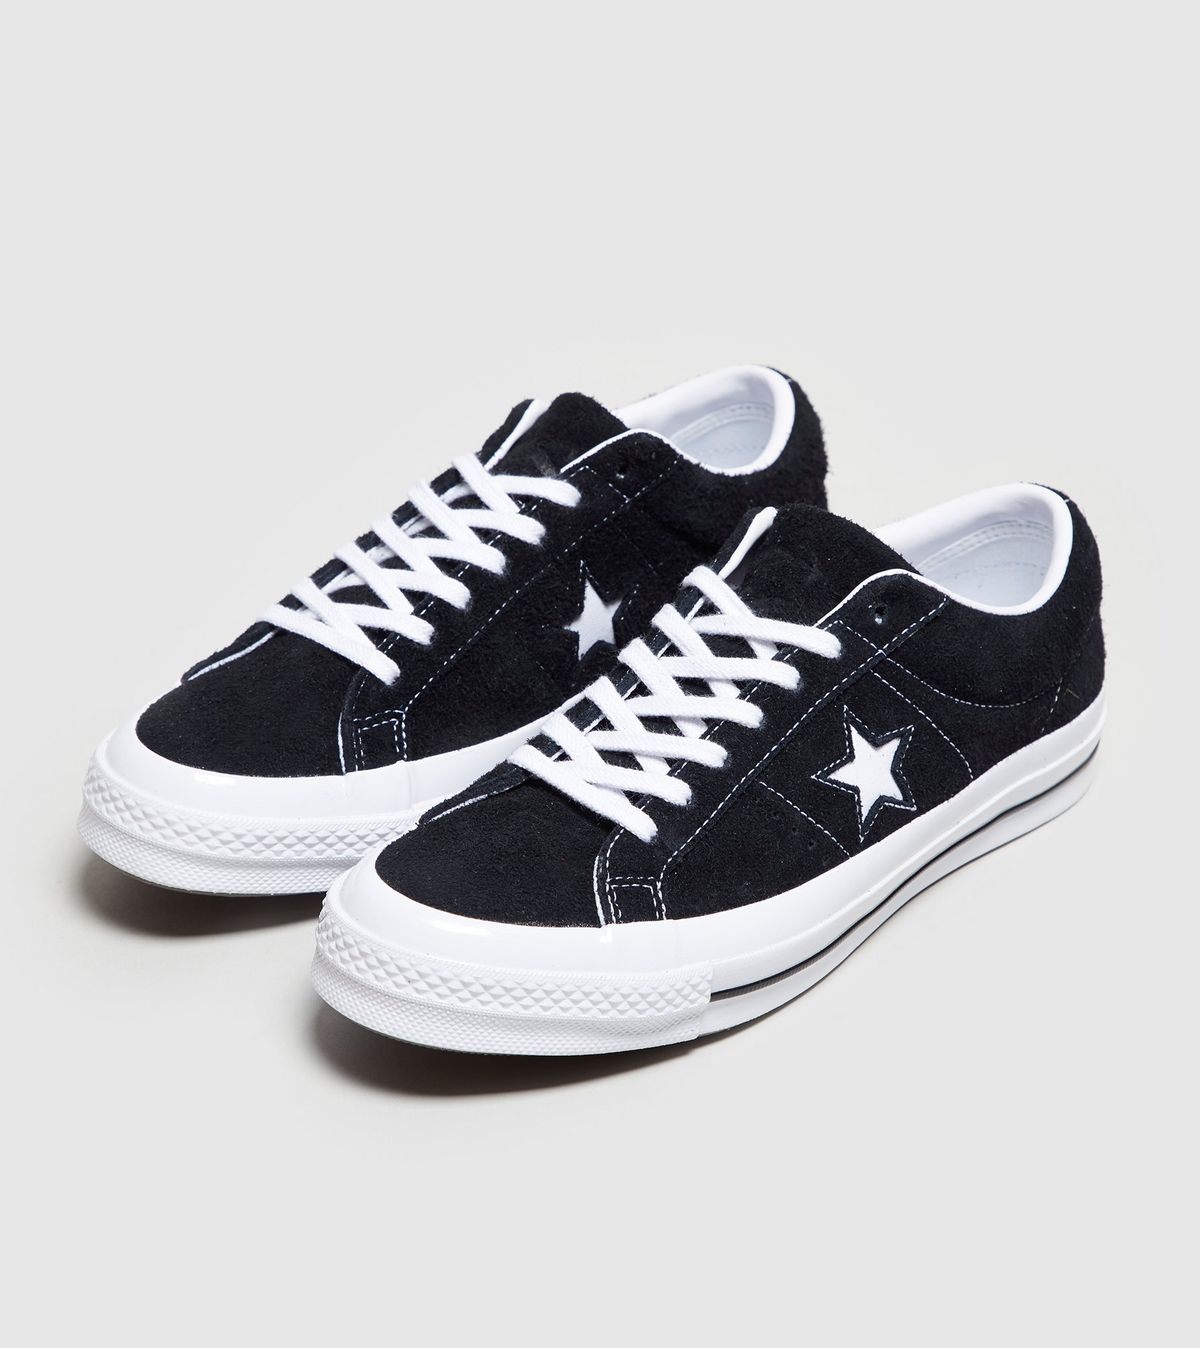 Giay - Converse One Star